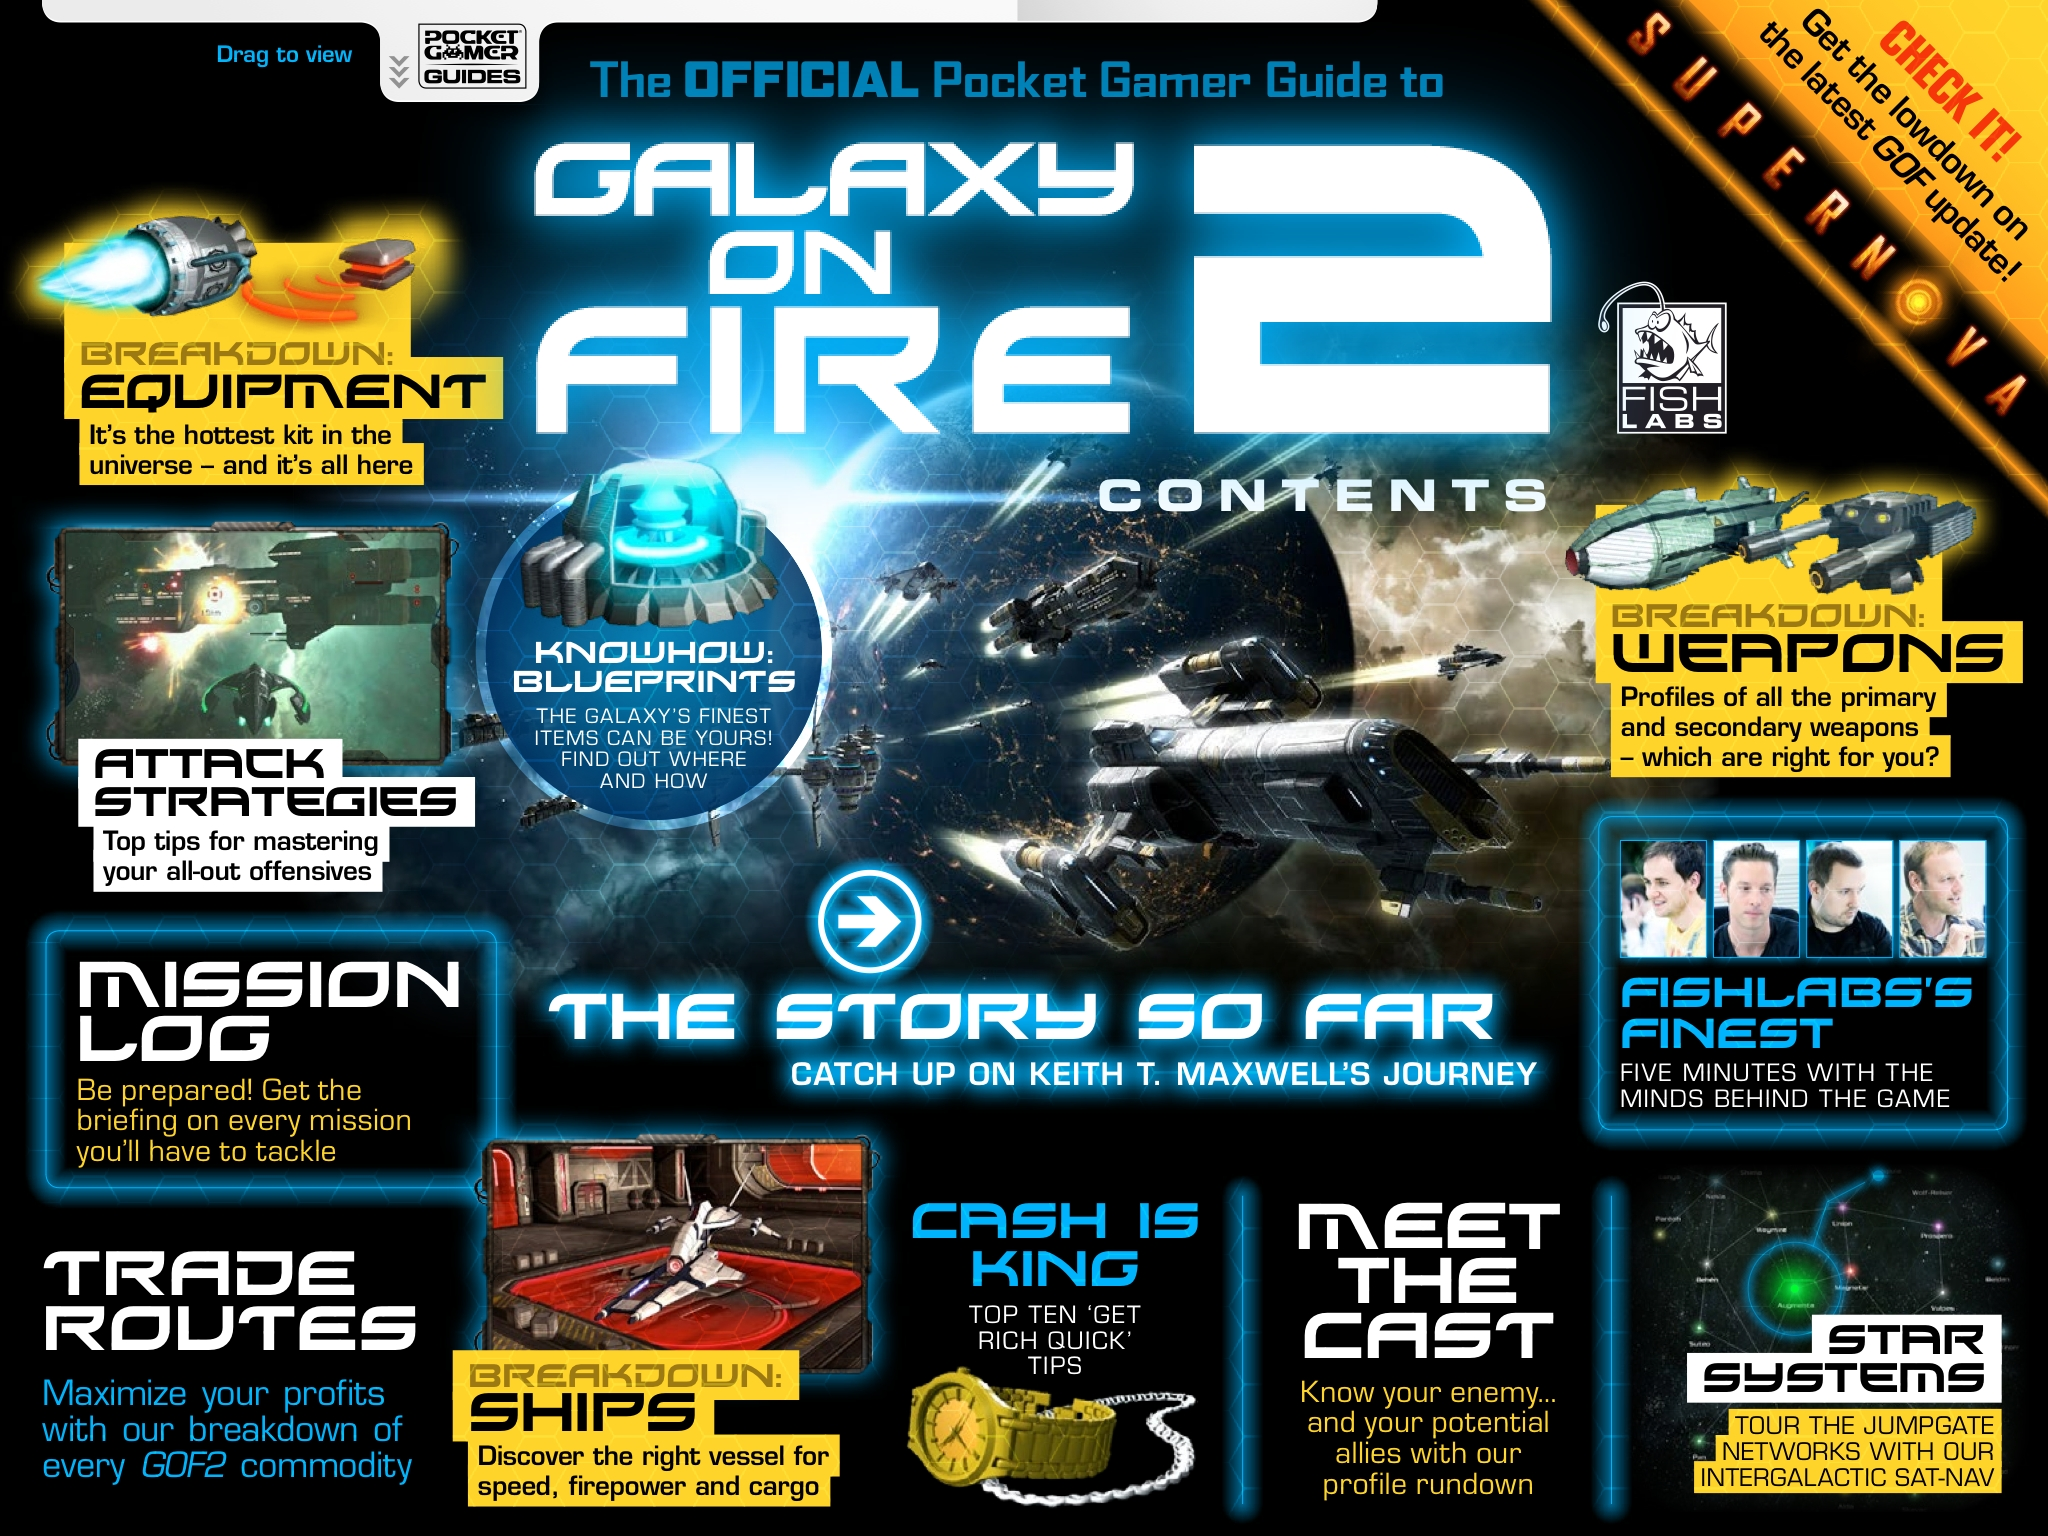 Pocket Gamer's official Galaxy on Fire 2 Guide gets updated